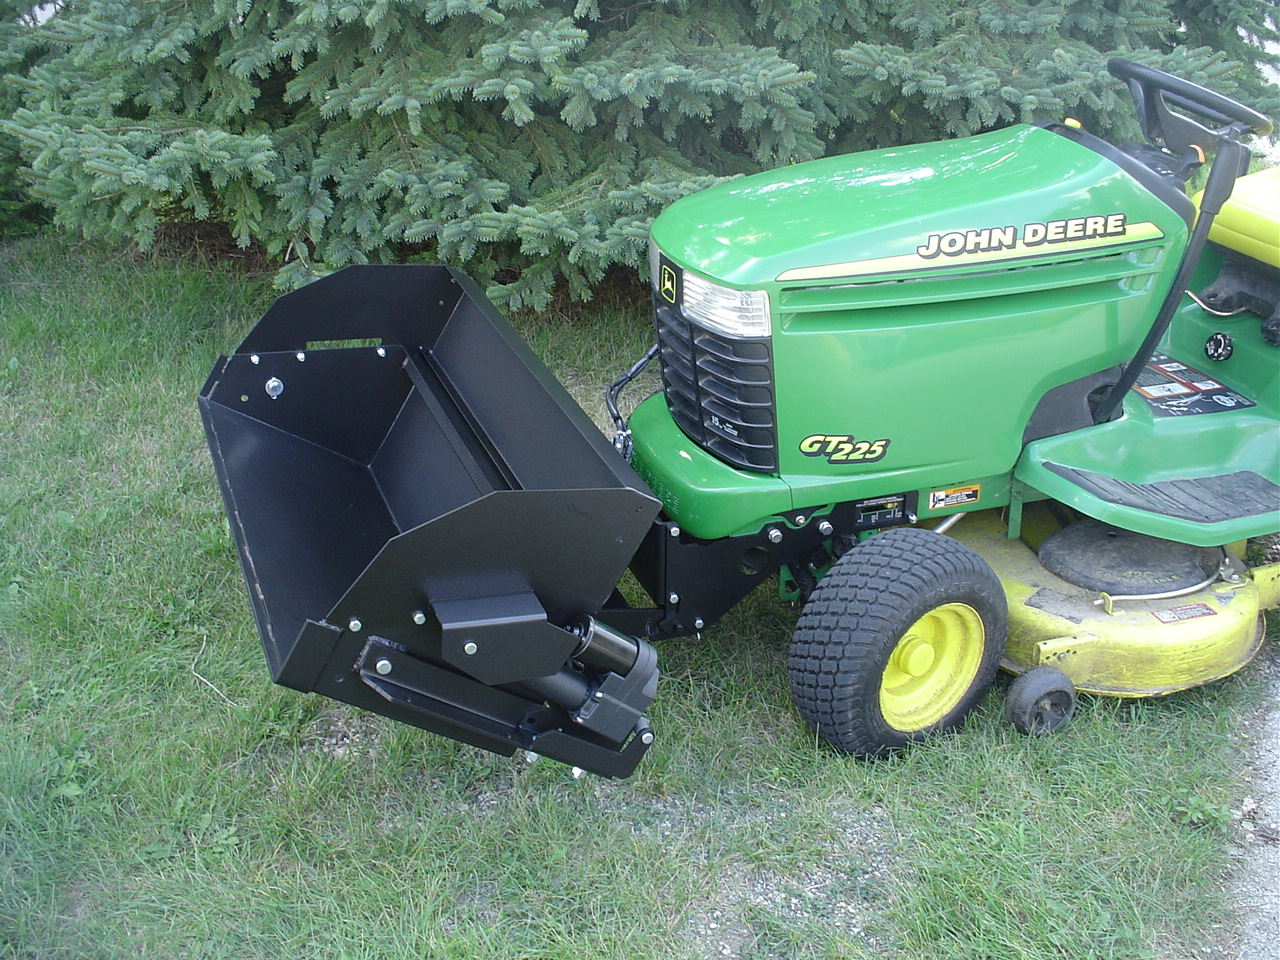 Johnny Bucket Jr. Craftsman Lawn and Yard Tractors